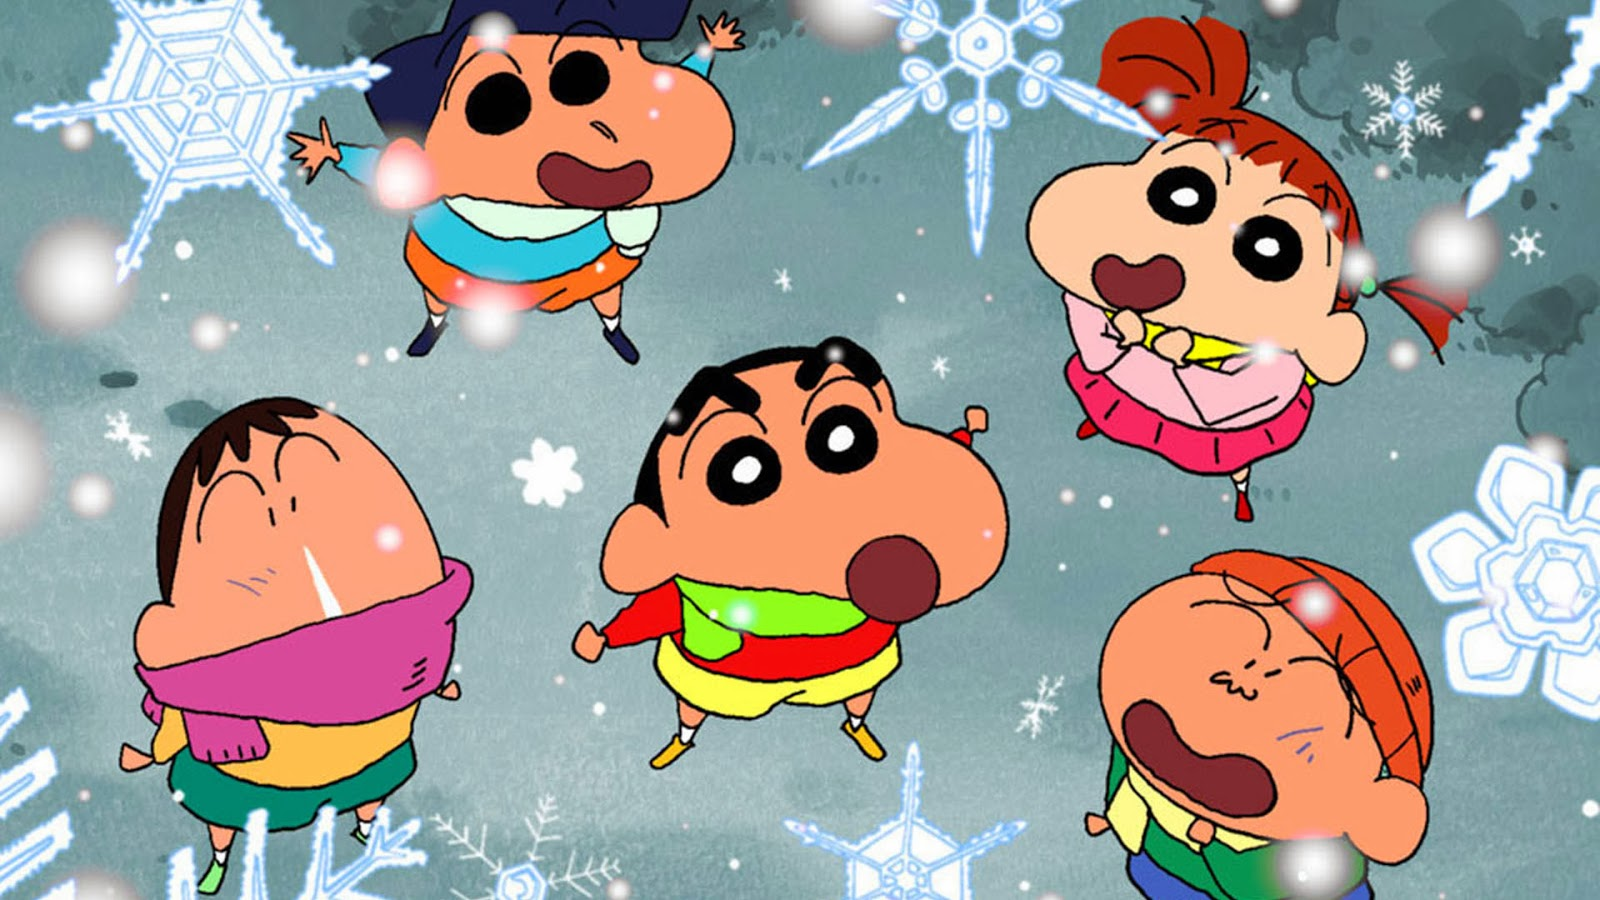 Wallpaper Shin Chan HD Download